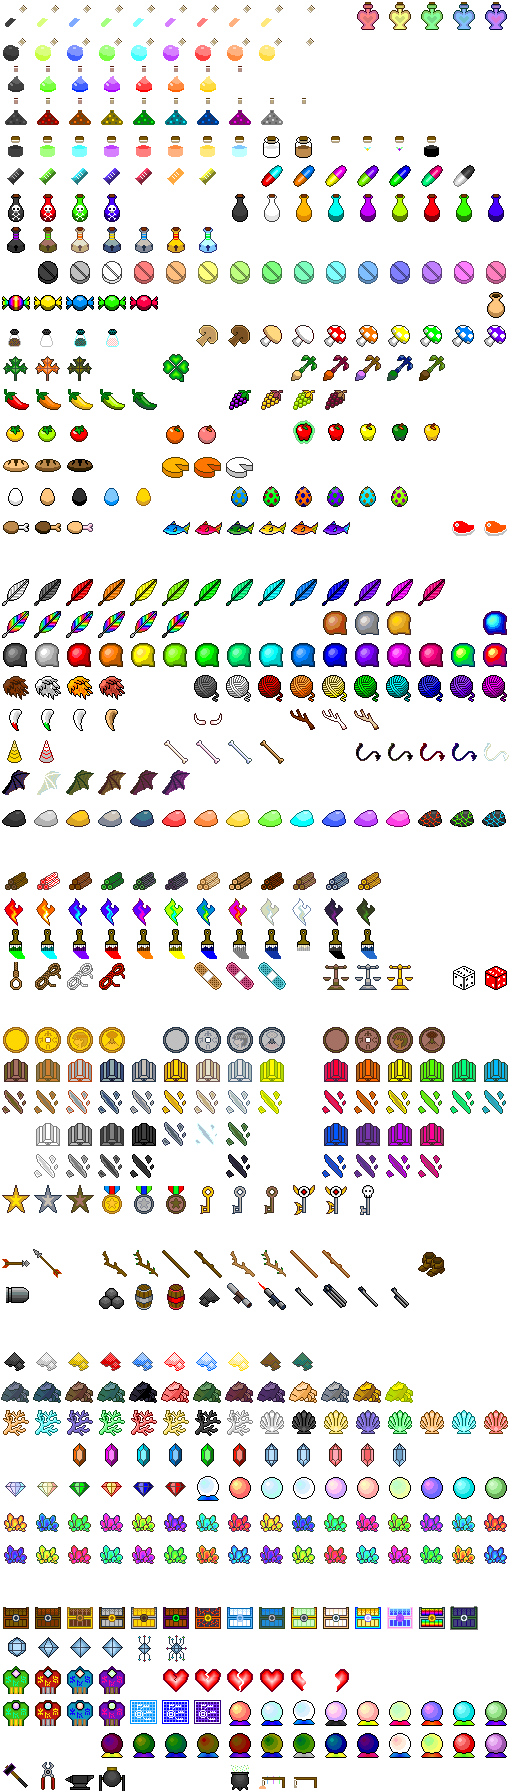 Misc items.png